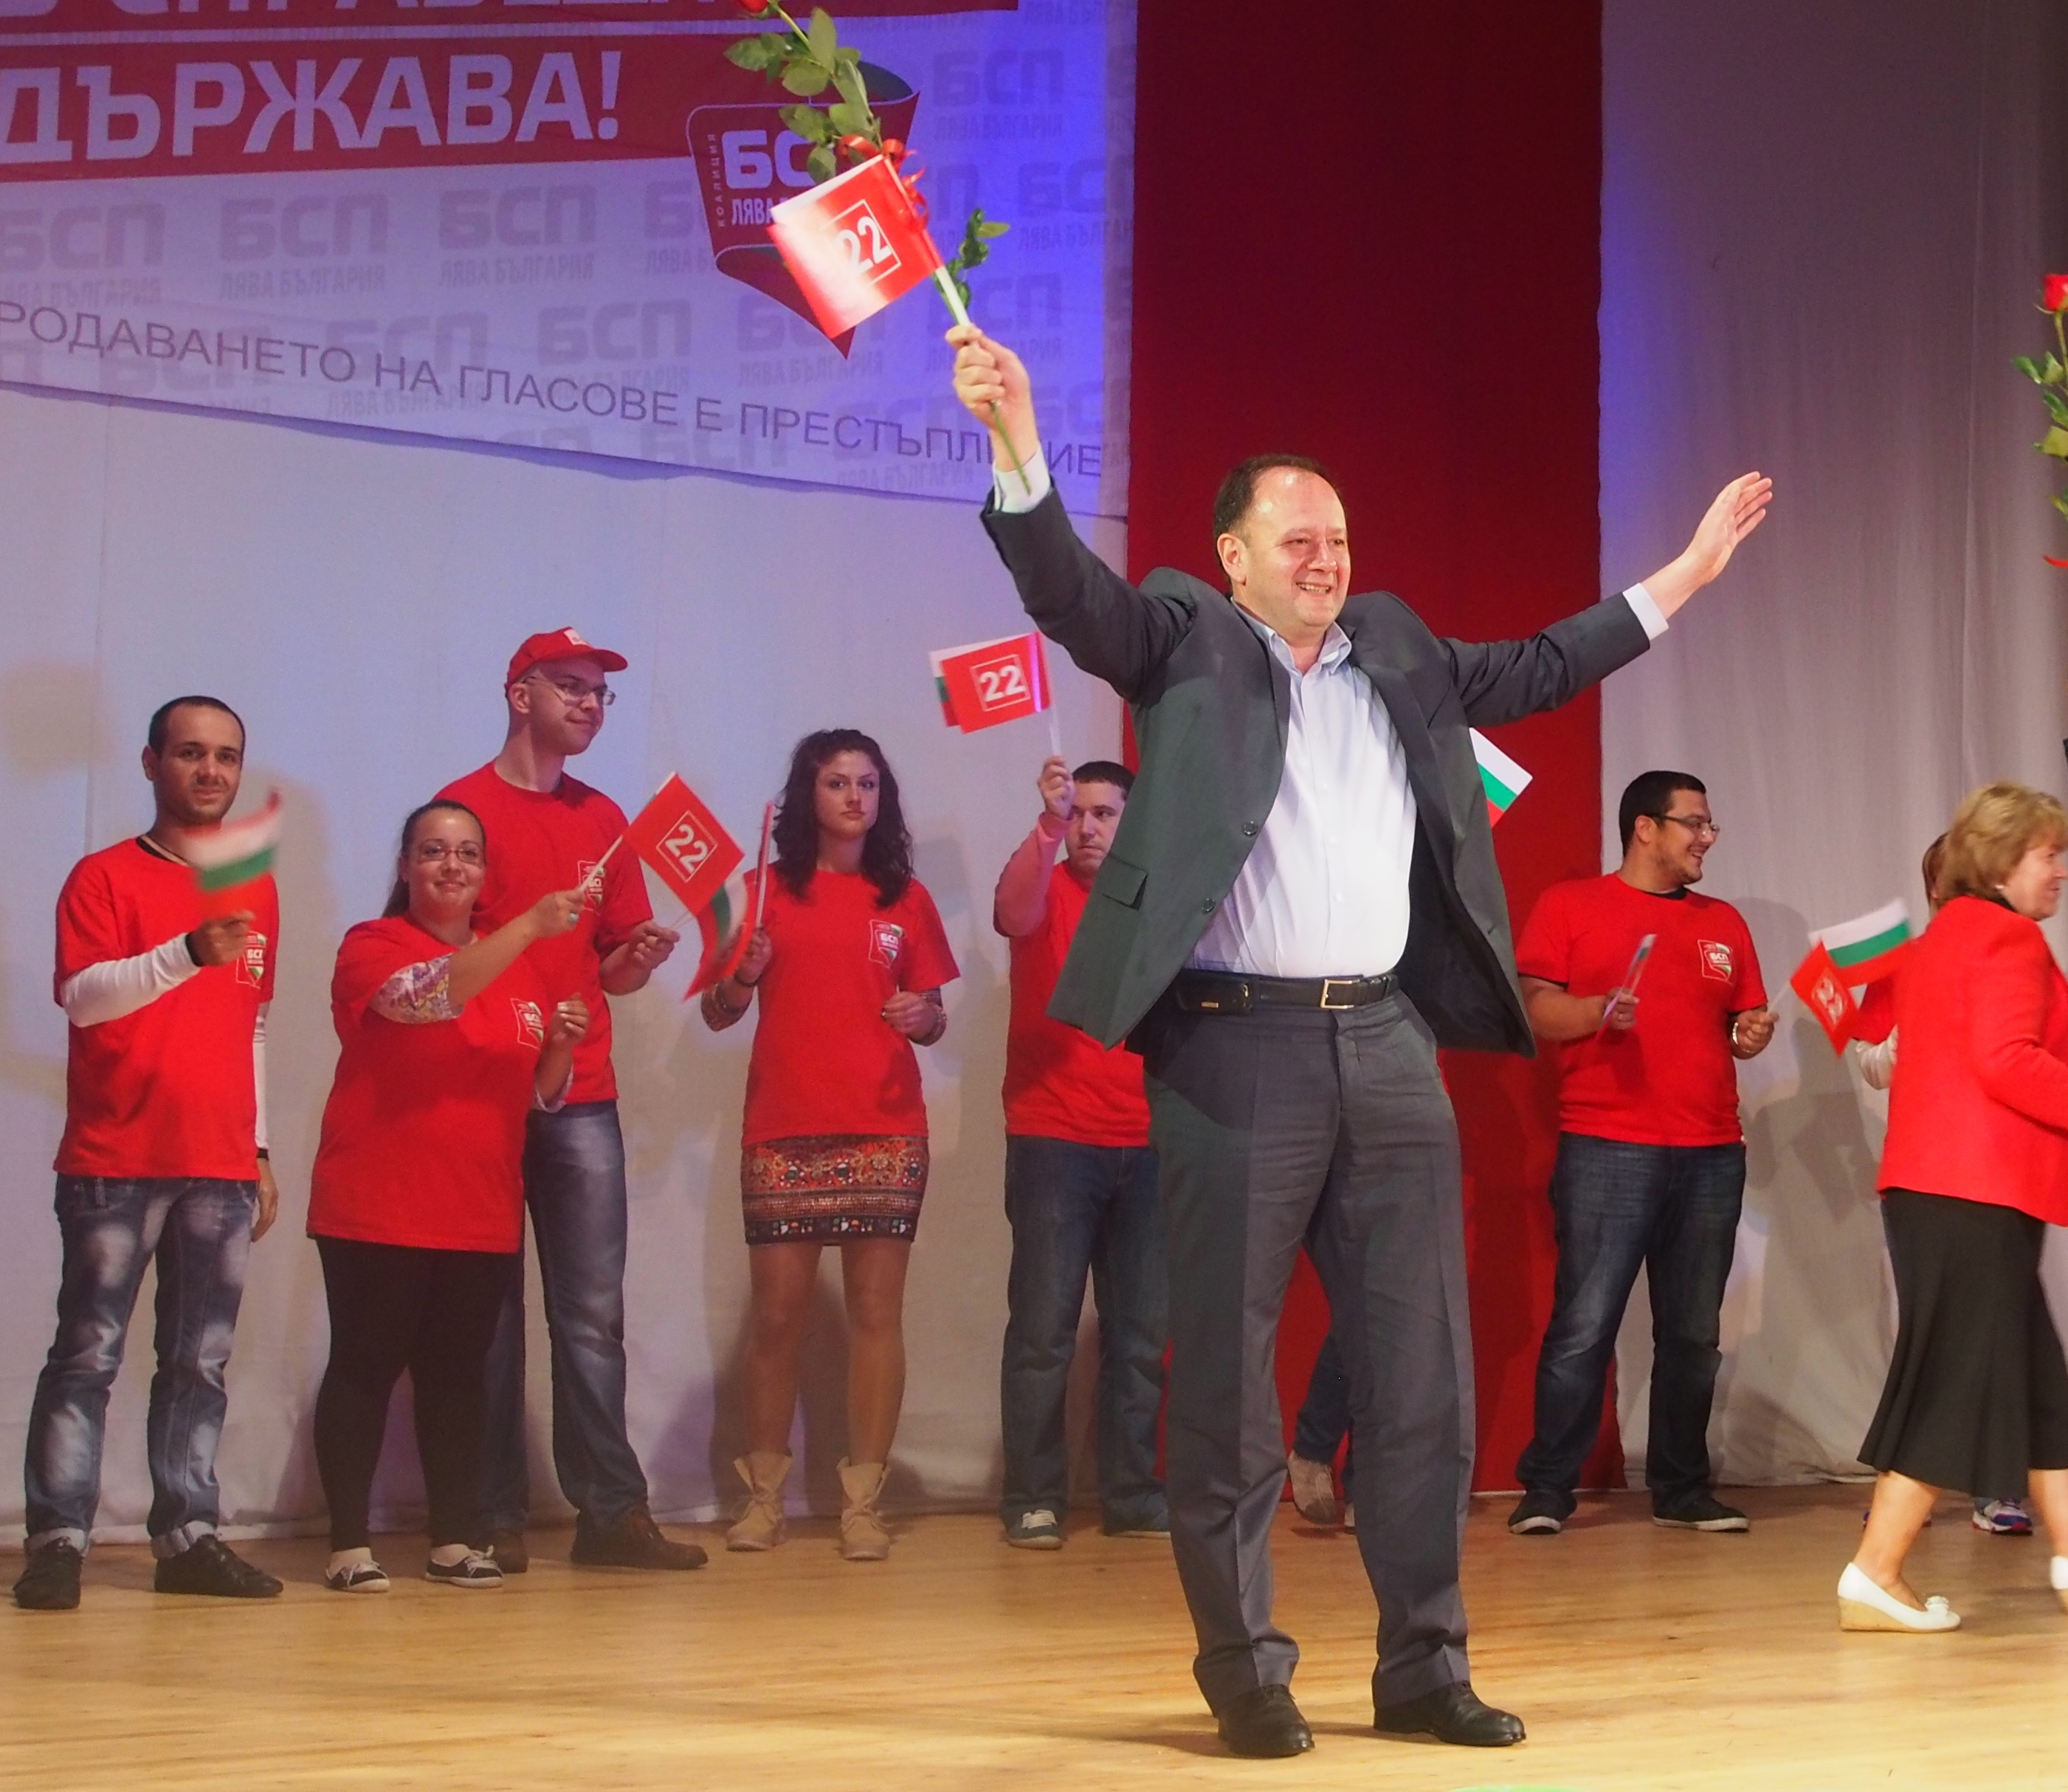 Bulgaria's ailing socialist party looks at leadership changes, cost savings